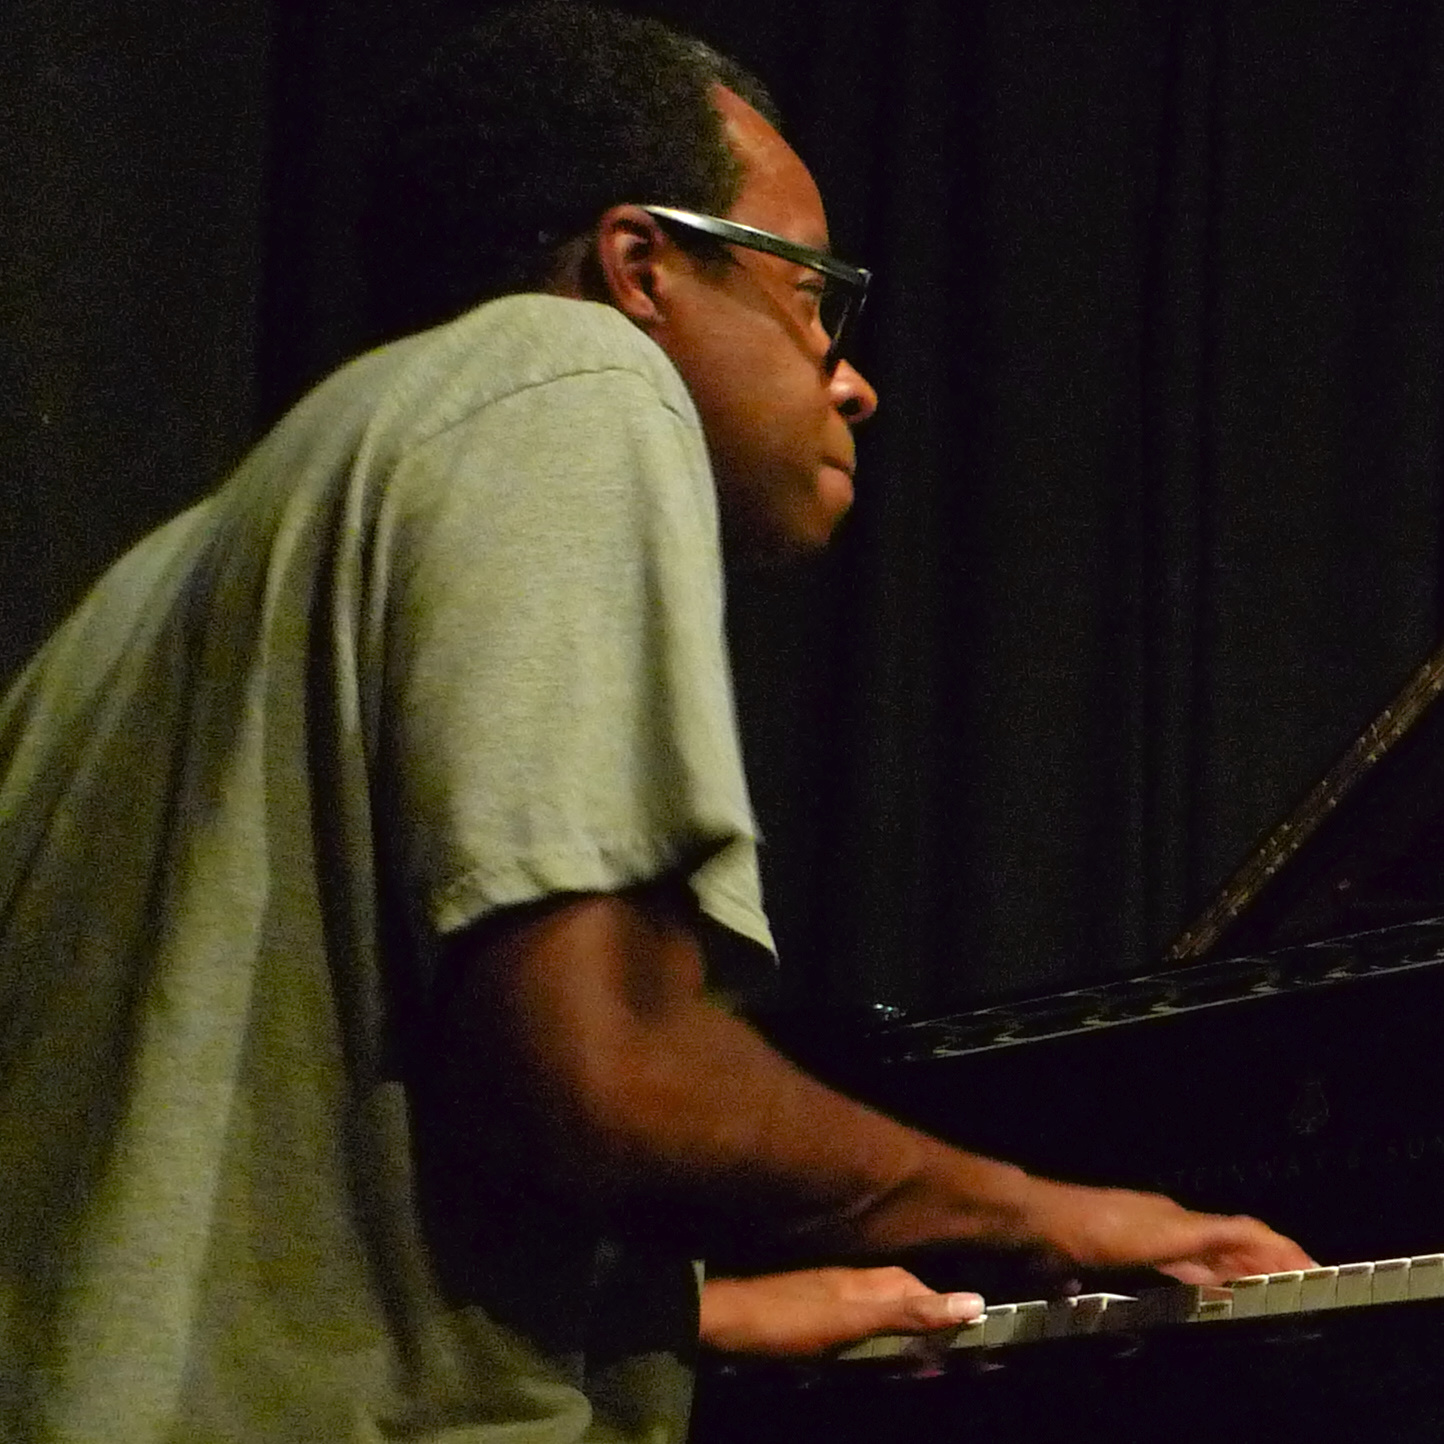 Matthew Shipp @ the Vortex 7-8 Sept 2011